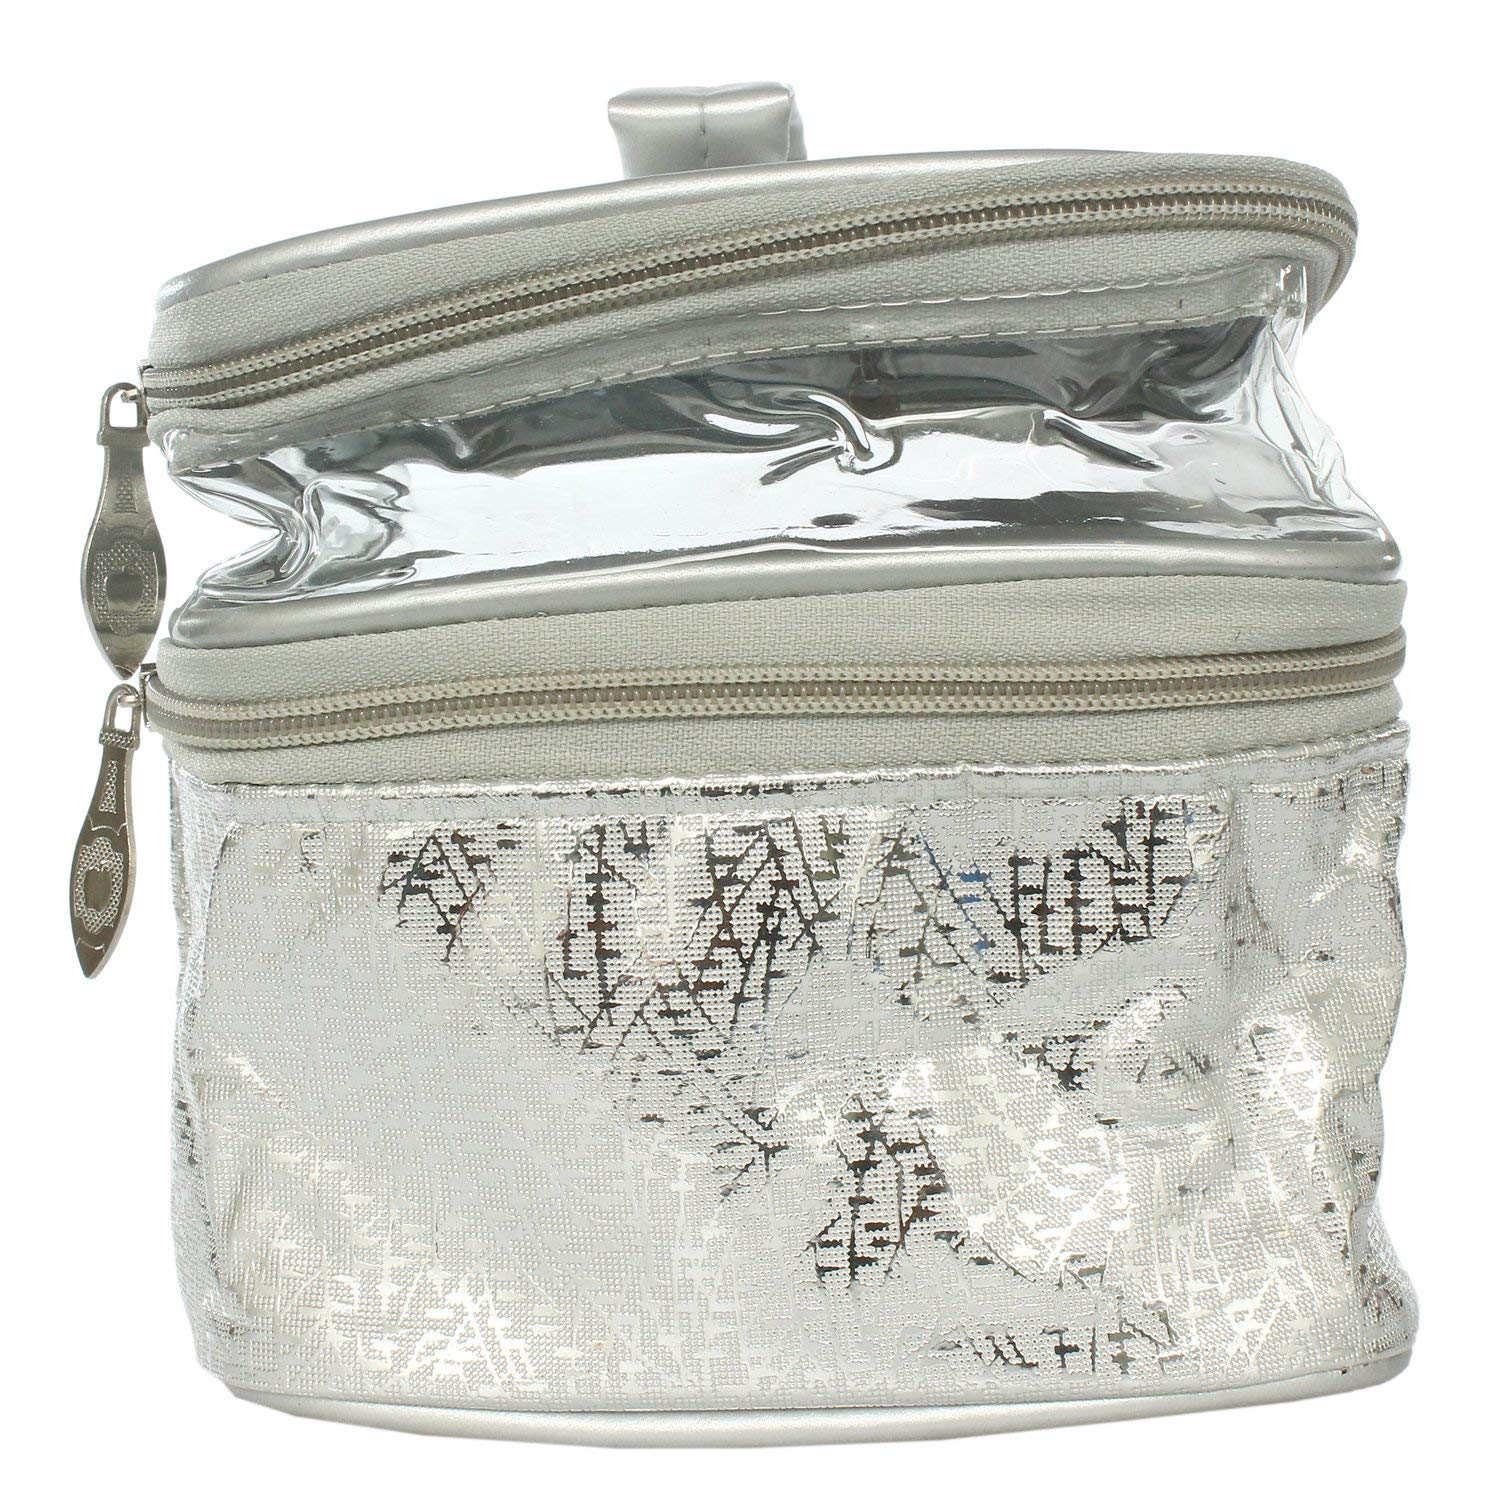 Multipurpose Makeup Pouch (Silver) - Bagaholics Gift